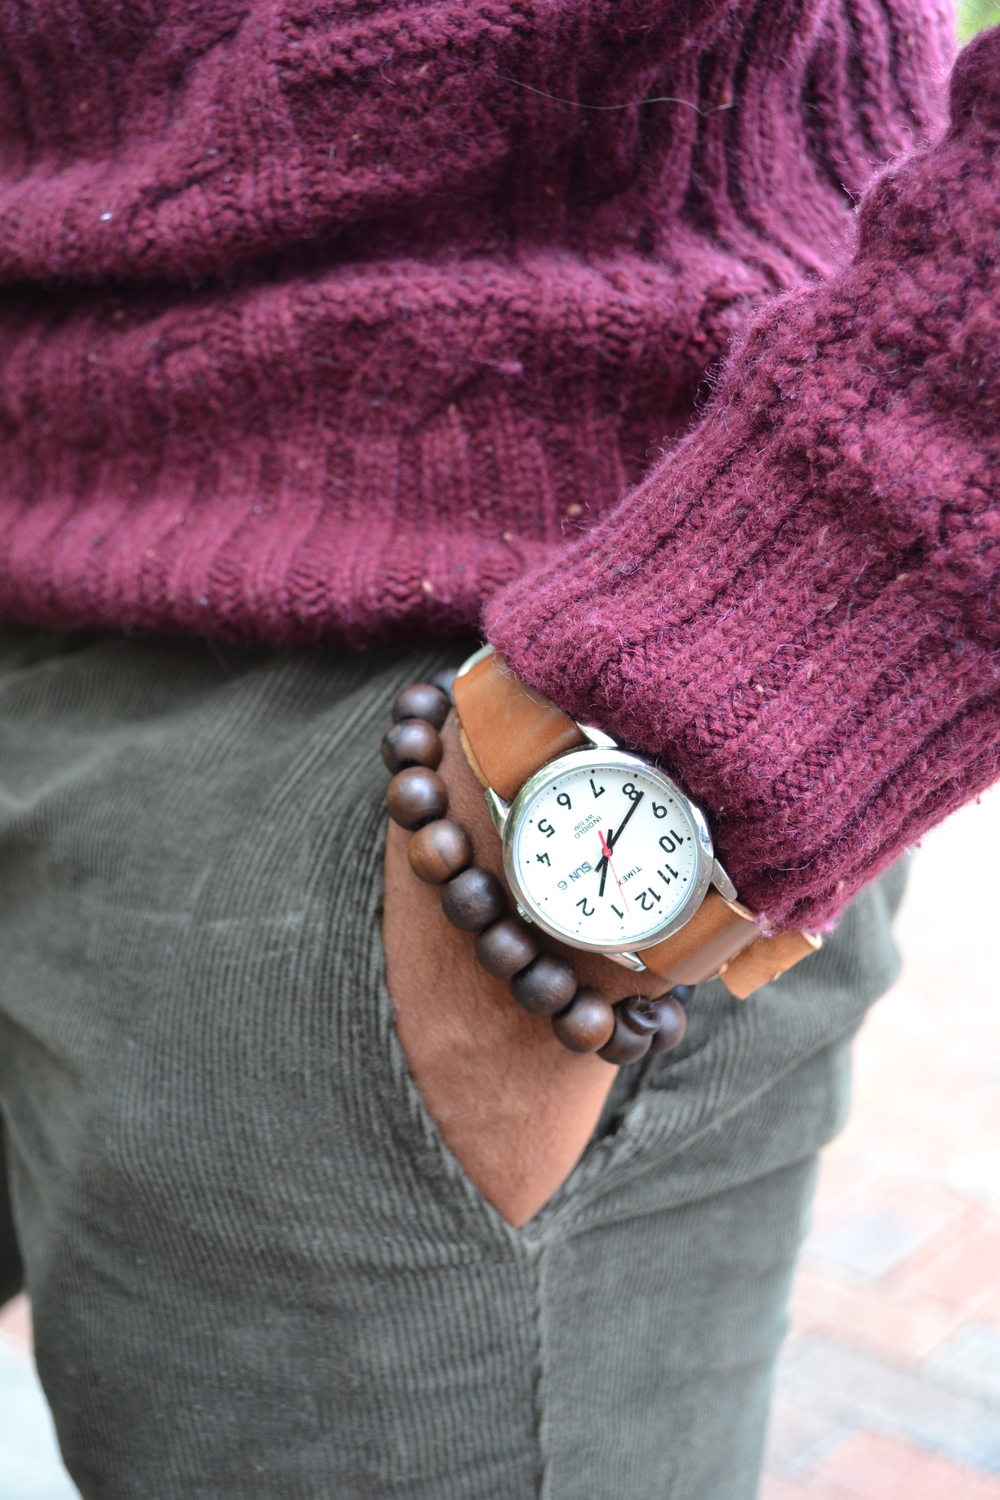 Turtleneck-Sweater-by-HM-–-Corduroy-Trousers-watch.jpeg